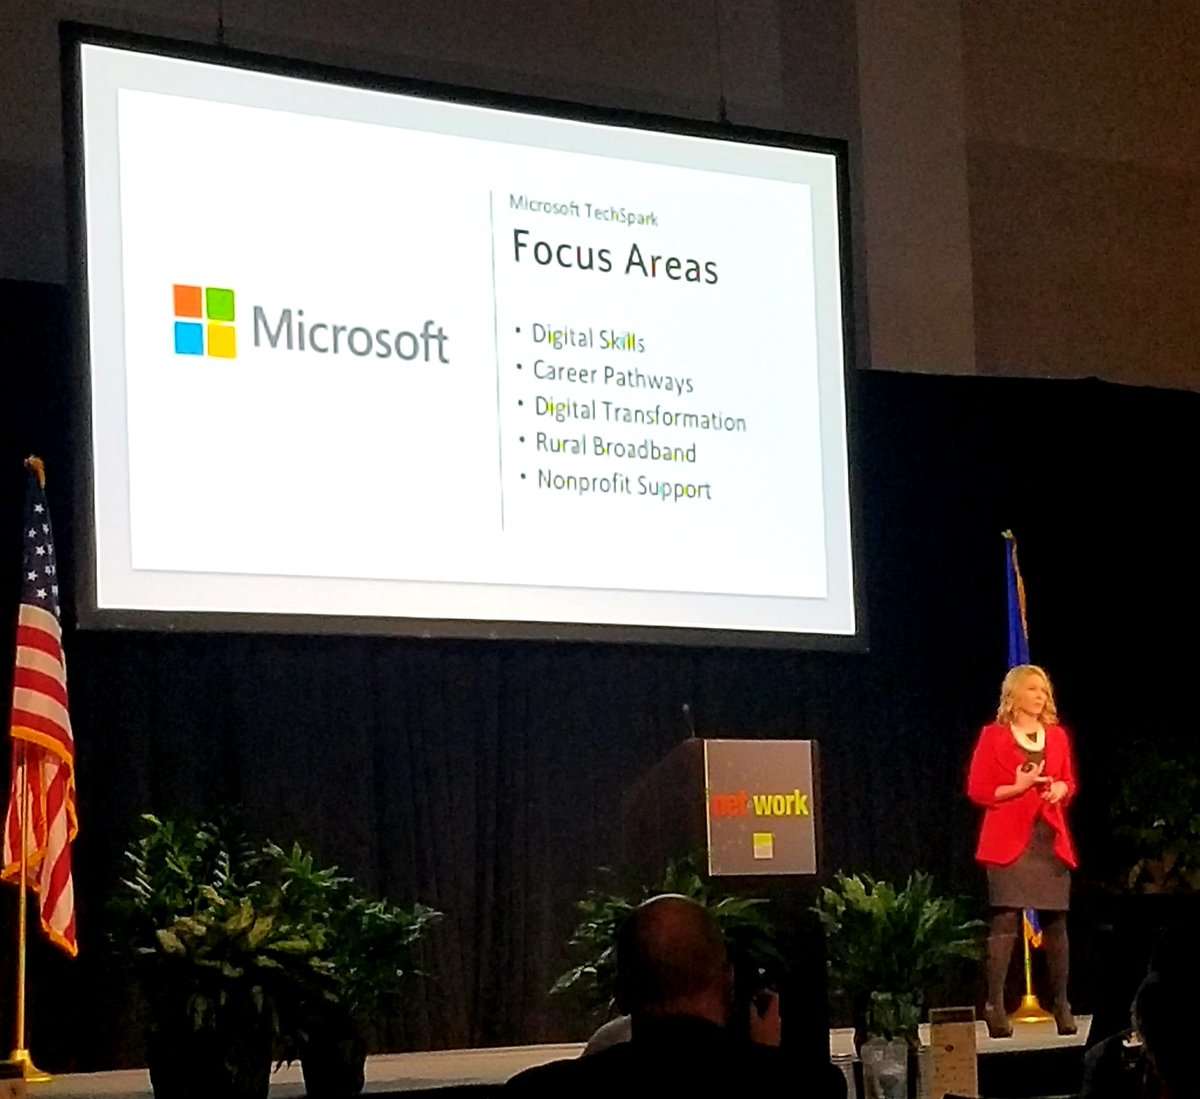 TechSpark Wisconsin @Microsoft @micschuler and fellow @UWWhitewater grad speaking at @TheNewNorth #nnsummit18 about the technology workforce and transformation in the region. <br>http://pic.twitter.com/a35S6sANwT